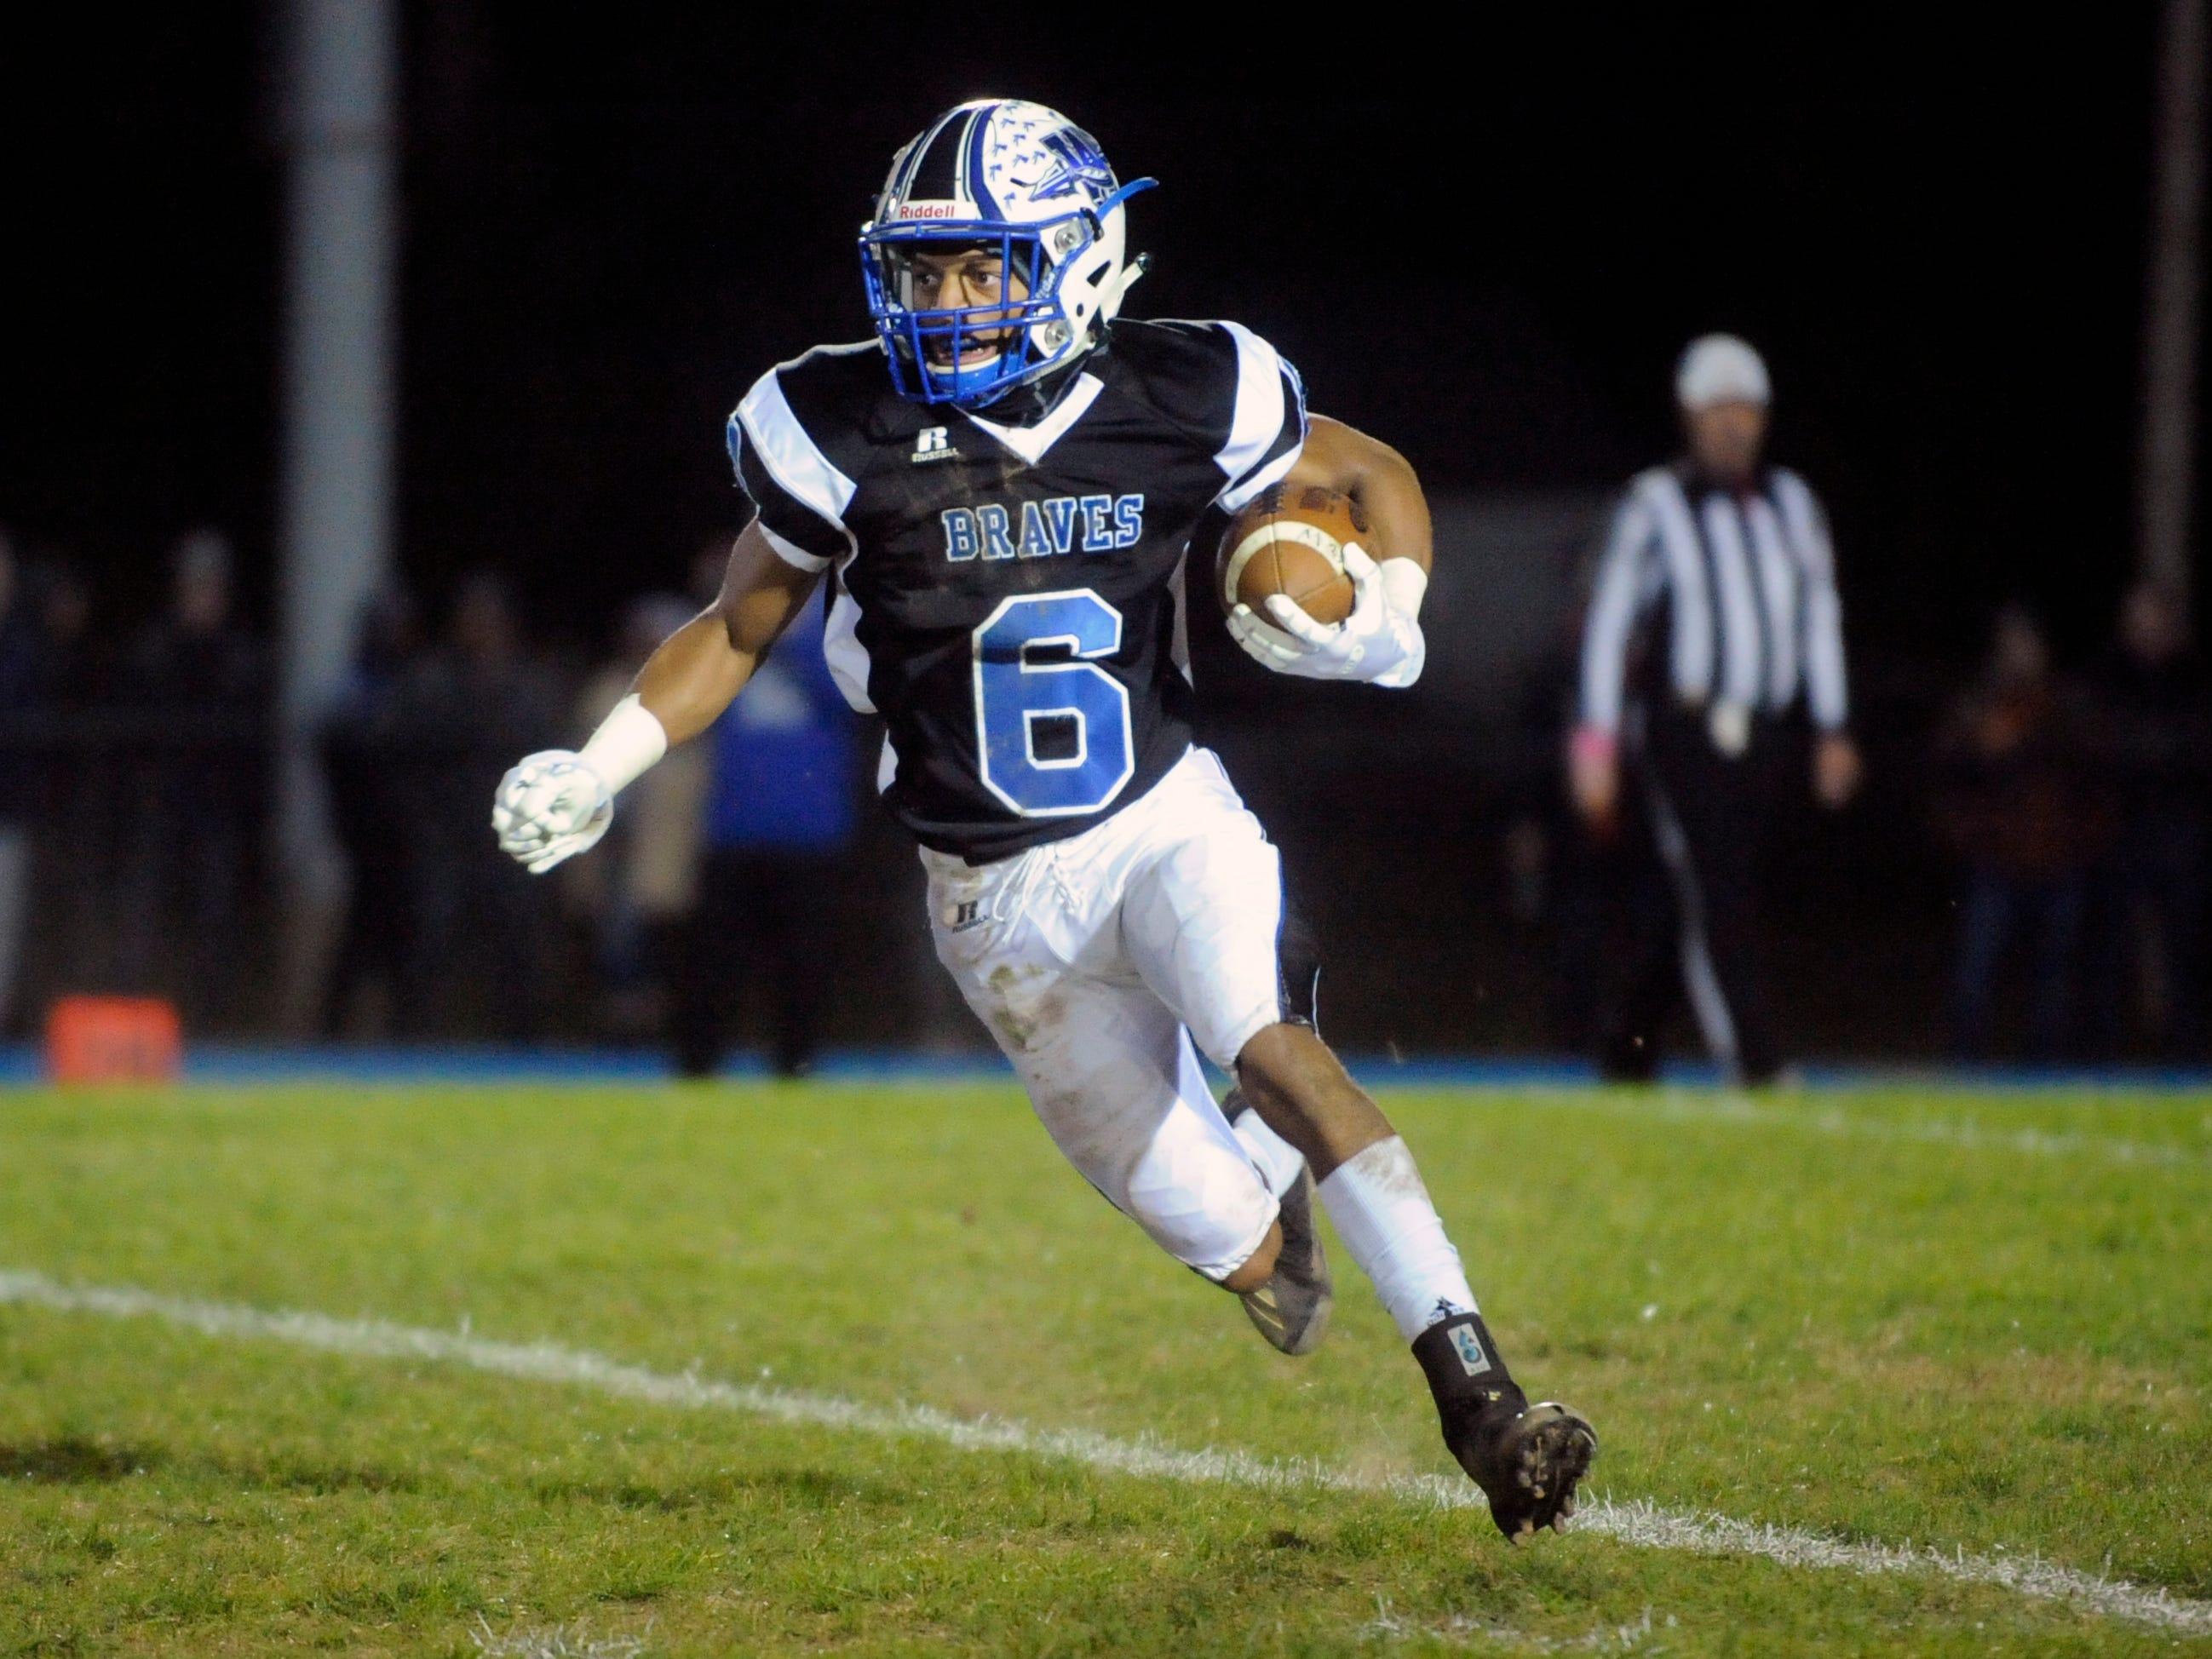 Williamstown's Damonte Campbell runs for a gain against visiting St. Augustine. The Braves topped the Hermits, 14-7, on Friday, October 26, 2018.